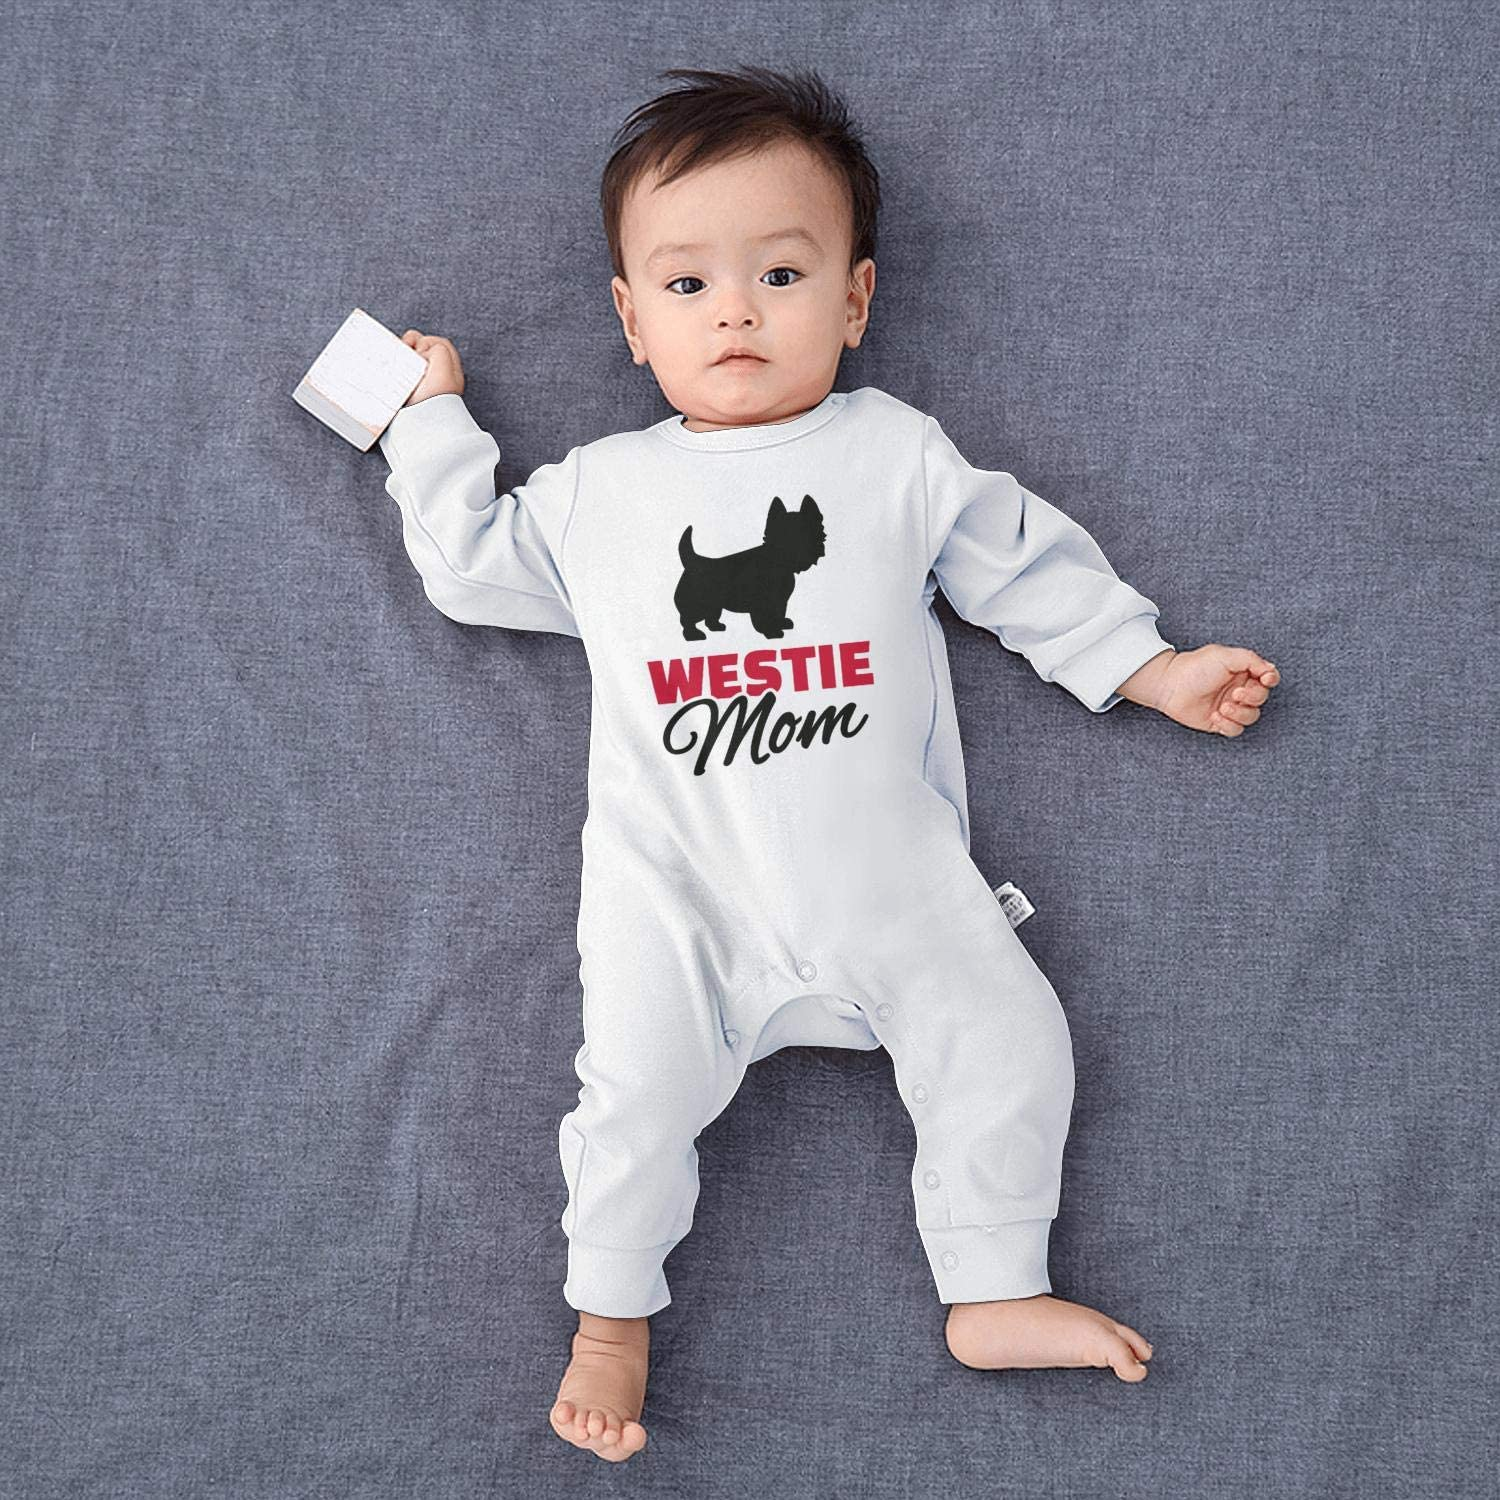 Dog Westie Mom Footed Pajamas Long Sleeve 100/% Cotton Newborn Clothes